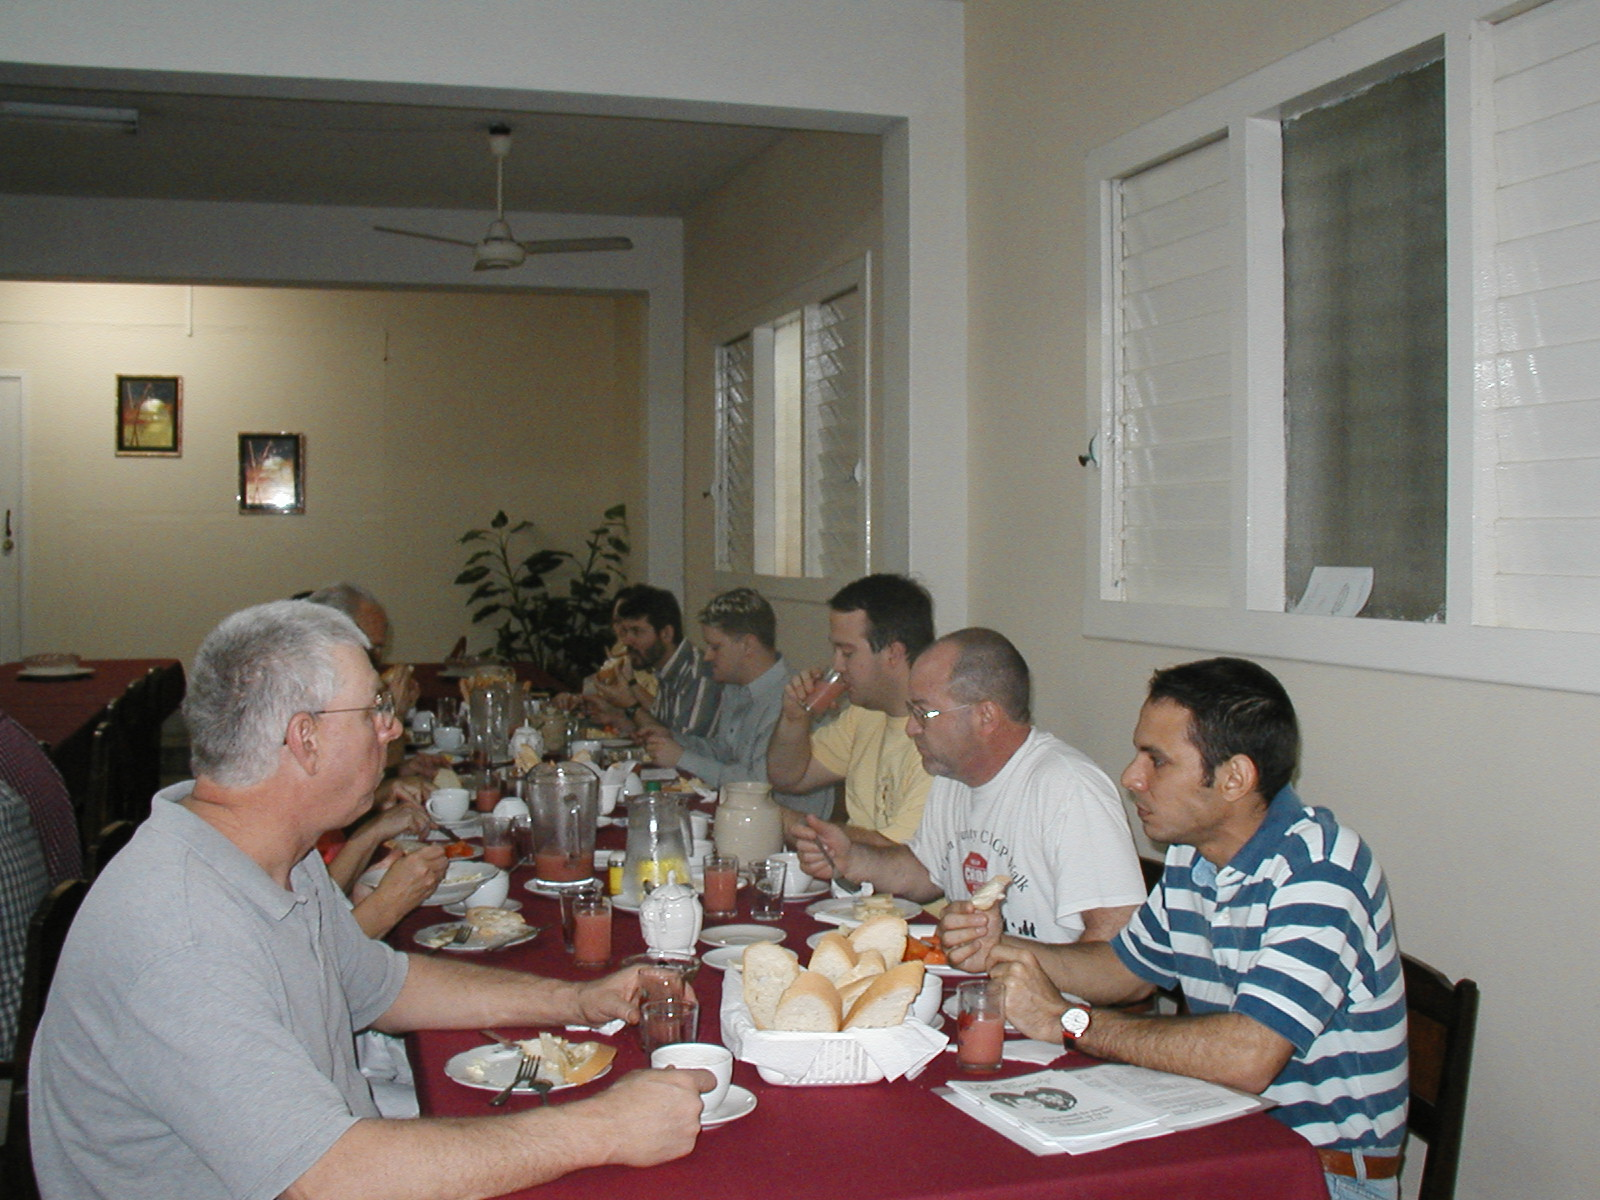 Meal time in Cuba